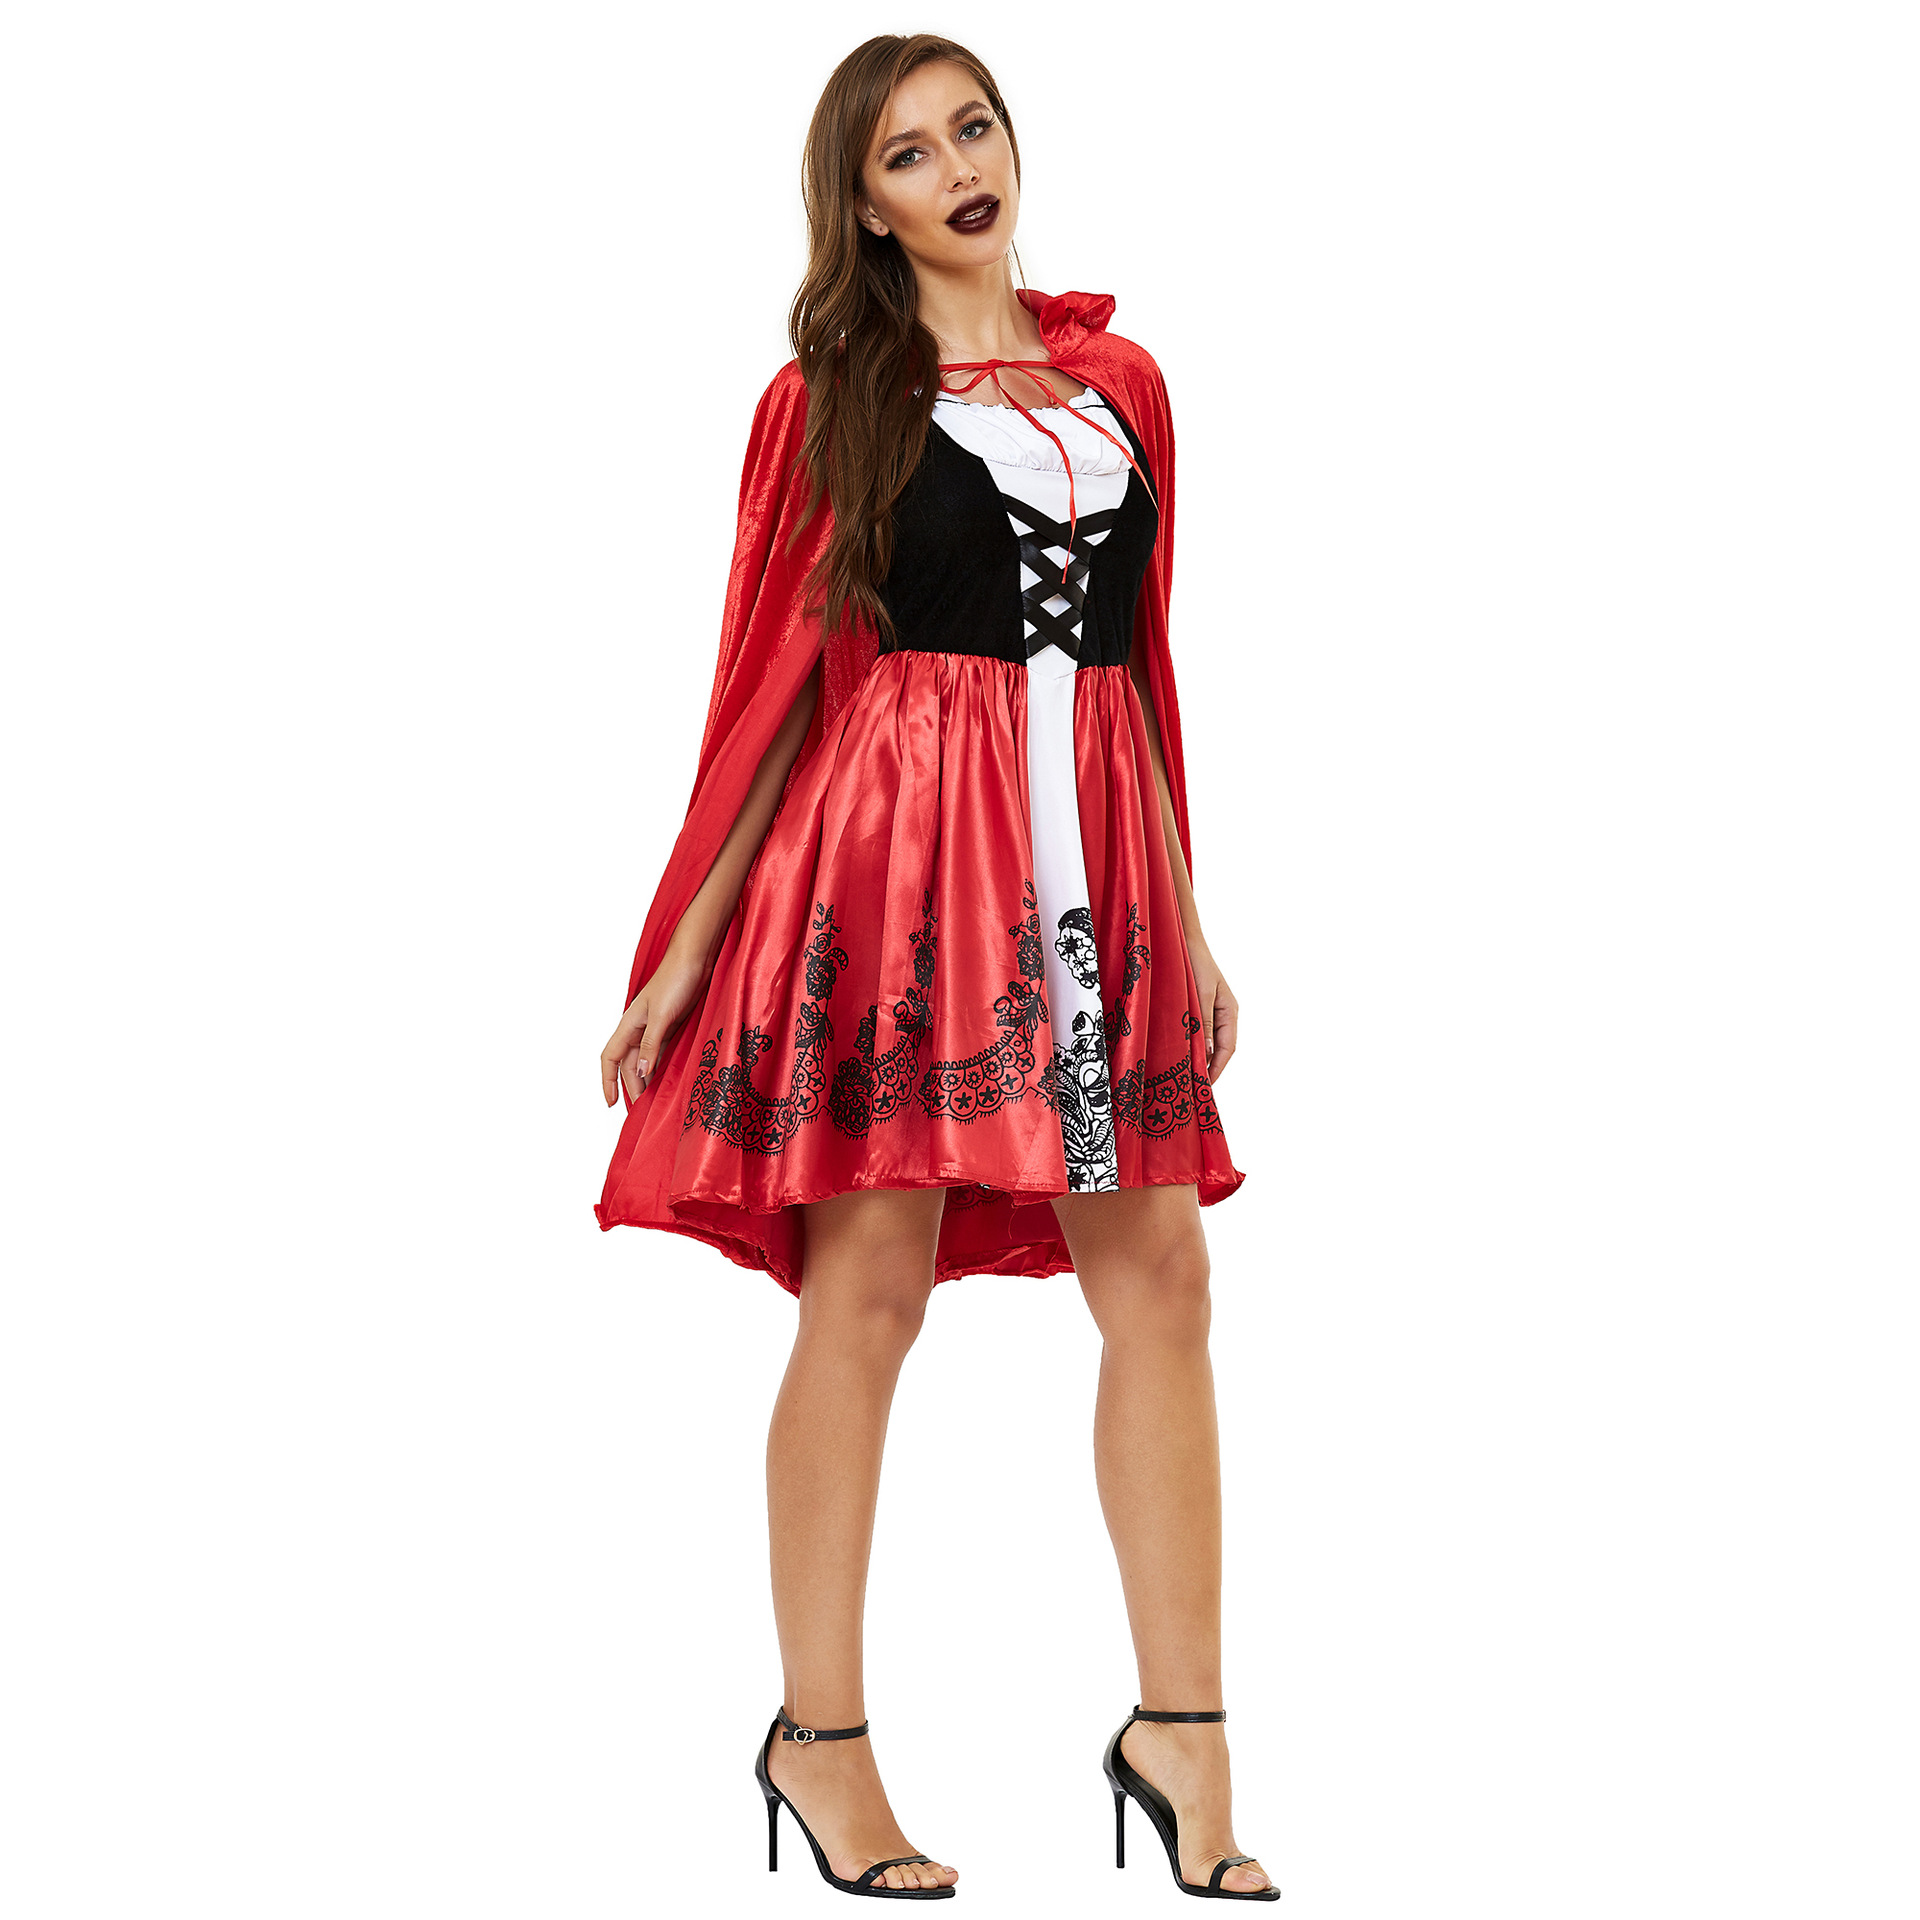 Women's Halloween Cape Little Red Riding Hood Cosplay role uniform thickened s-3xl plus 2